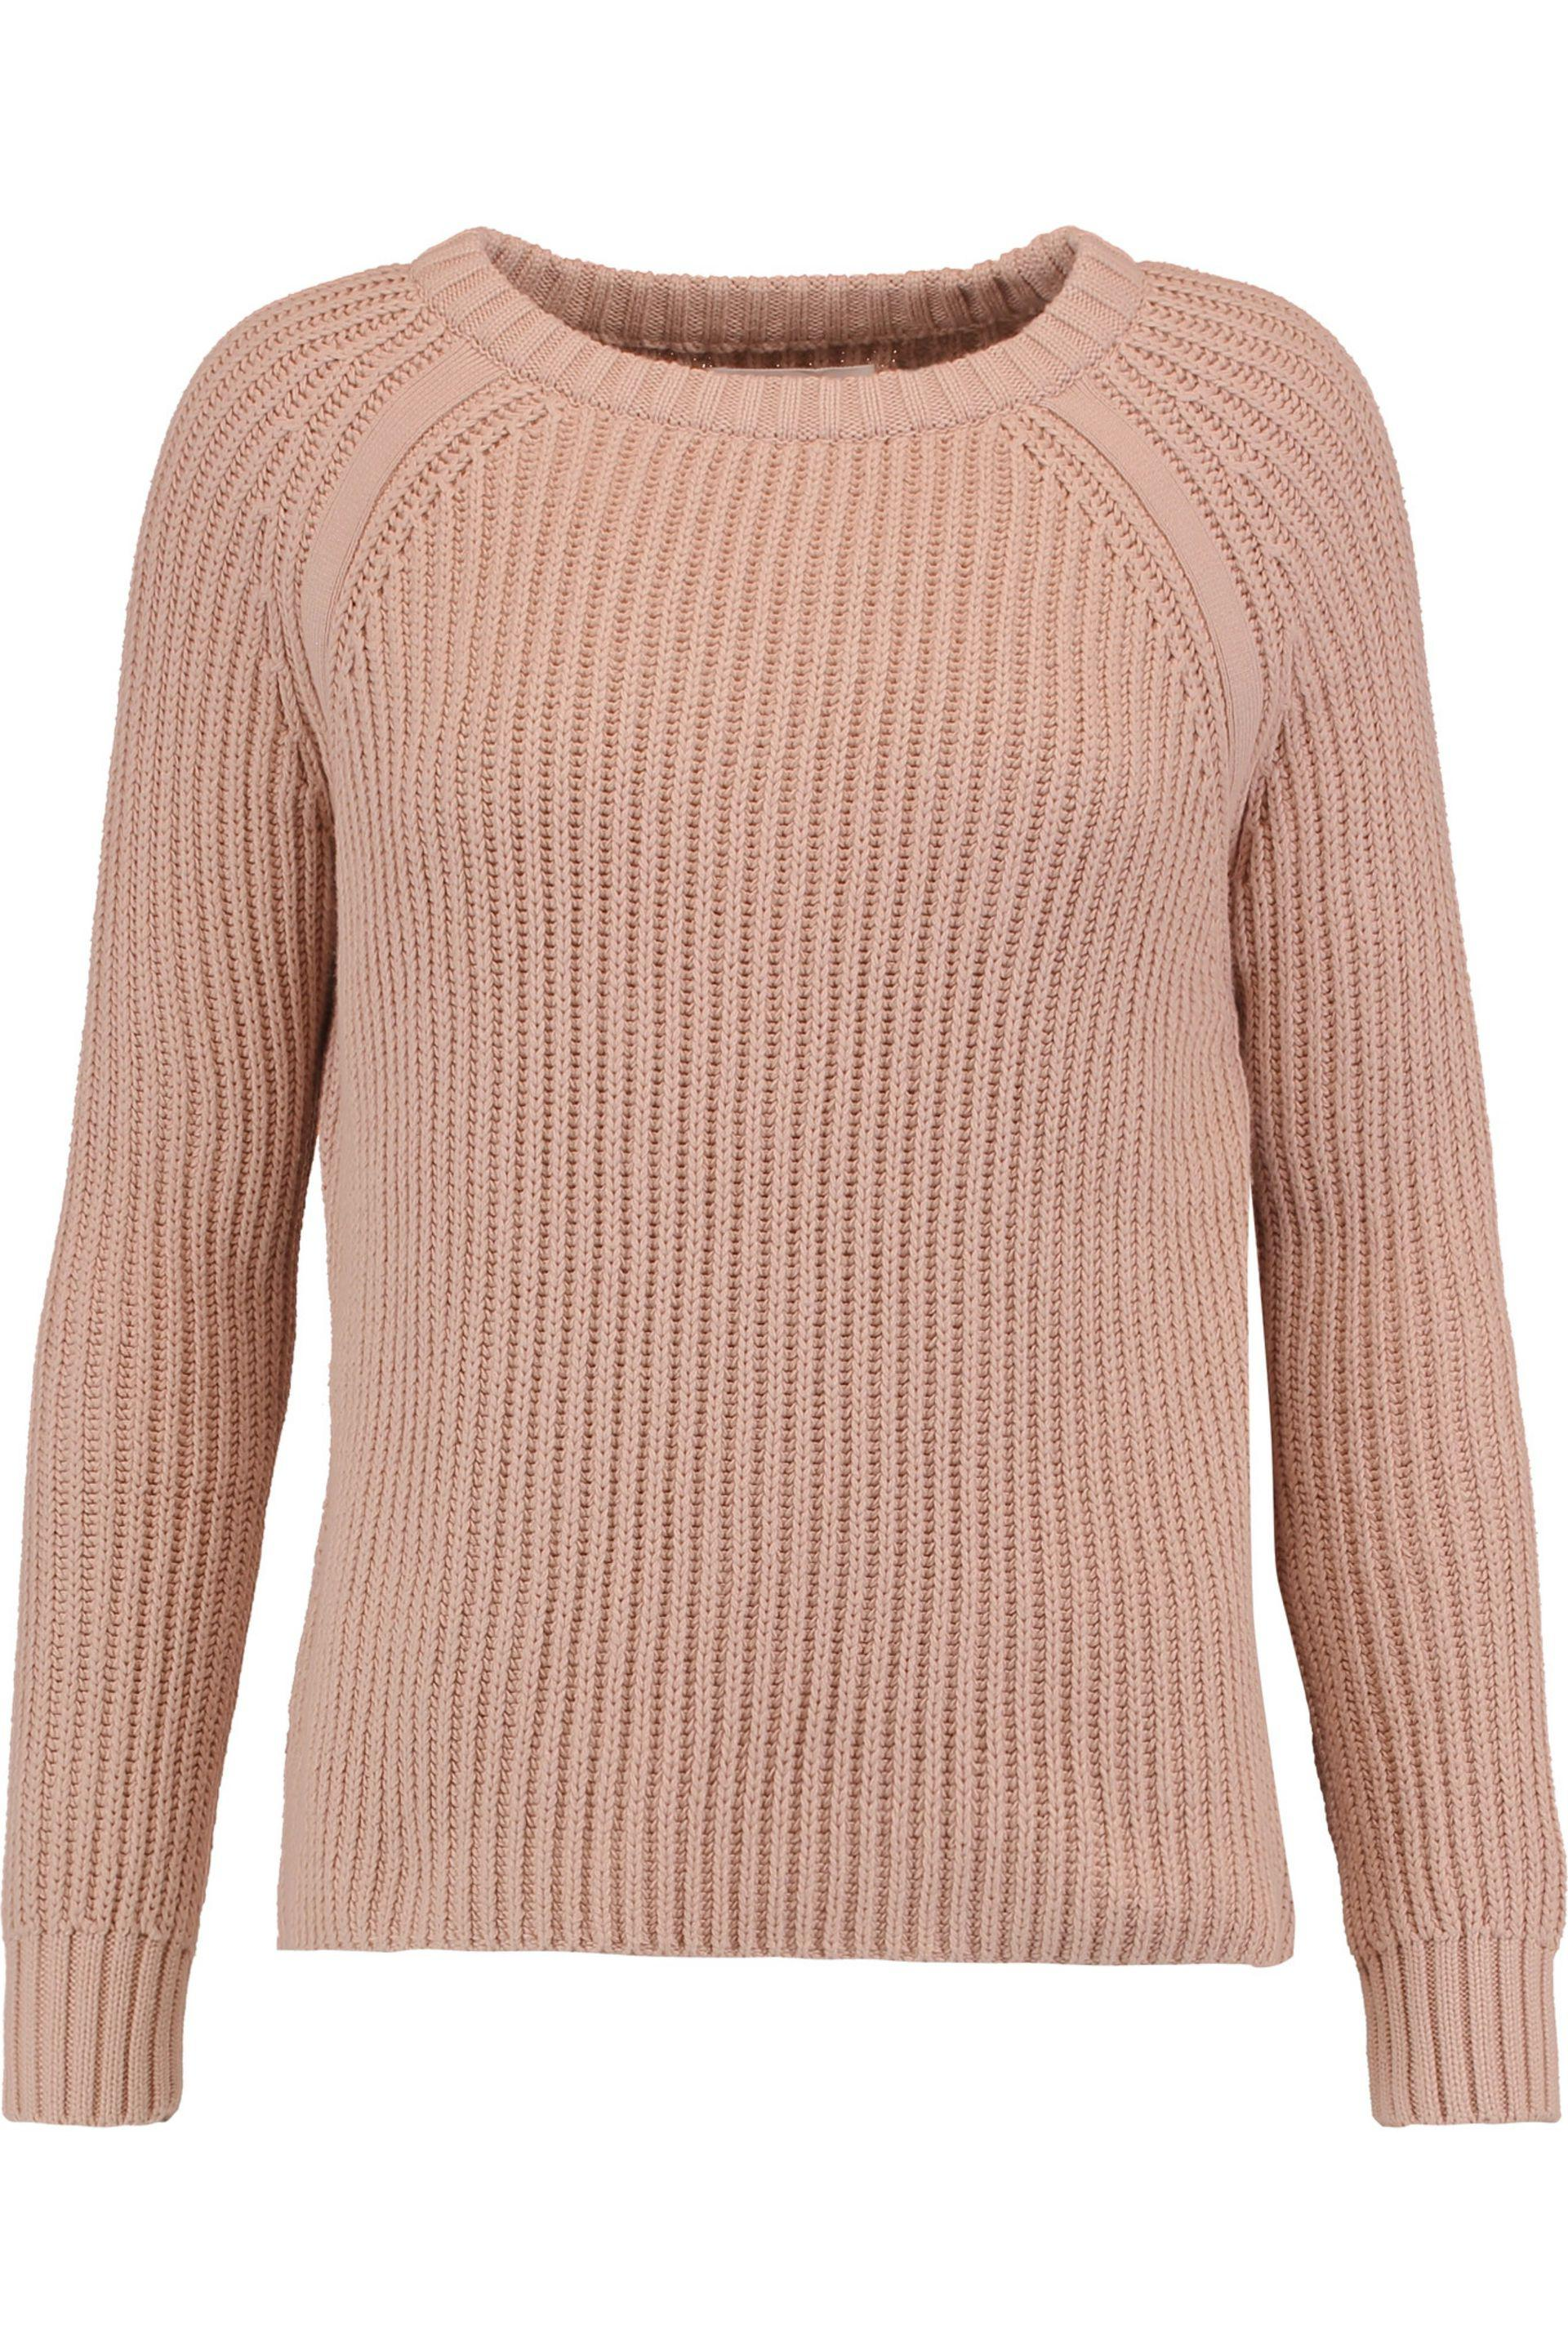 Best Prices For Sale M.i.h Jeans Woman Tie-back Waffle-knit Cotton Sweater Cream Size L Mih Jeans Shipping Discount Authentic erZBBl5d